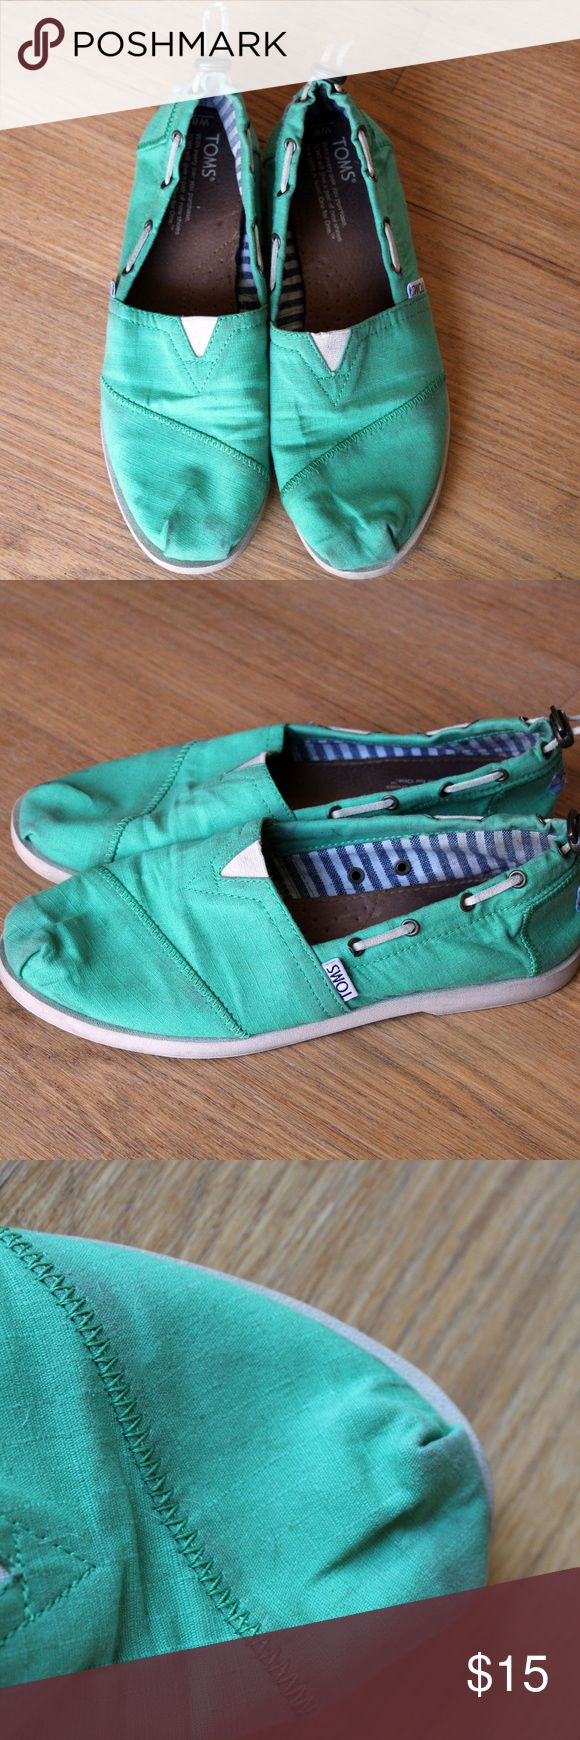 Green Tom's Green Tom's women's size 8. Great for St.Patrick's day!! have a little bit of wear on them shown in the 4th picture there is a little stain. There is still some life left in these fun shoes !! toms Shoes Flats & Loafers